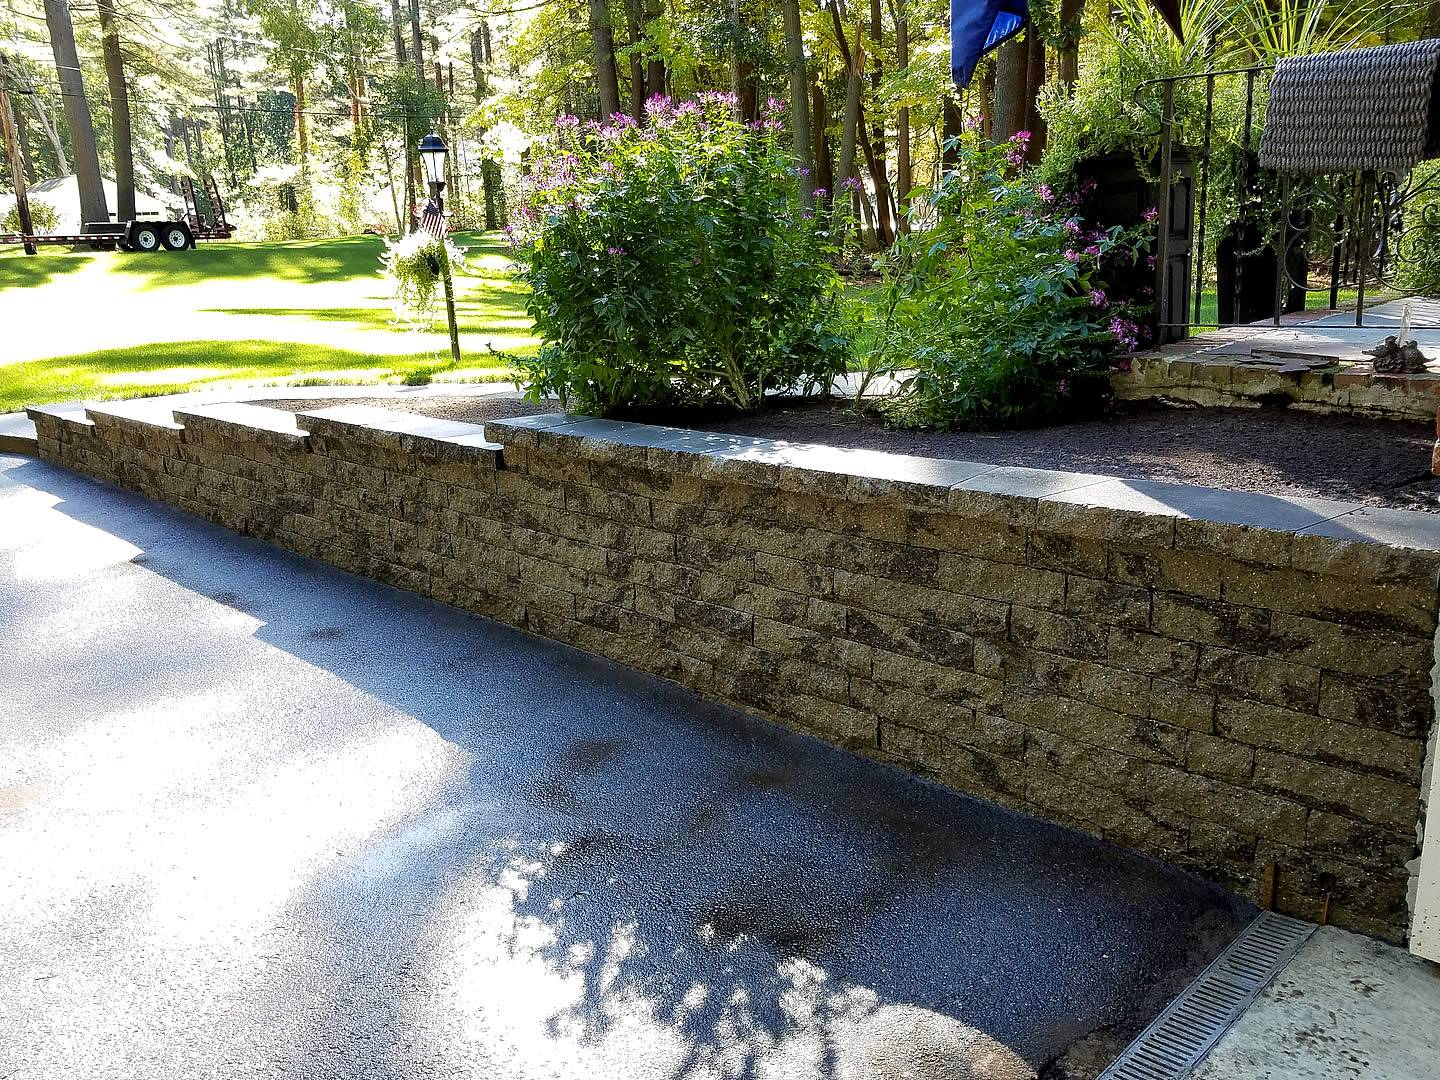 C. Hawkes Hardscape Design & Installation serving Northern Massachusetts and Southern New Hampshire. Call 978.670.9300